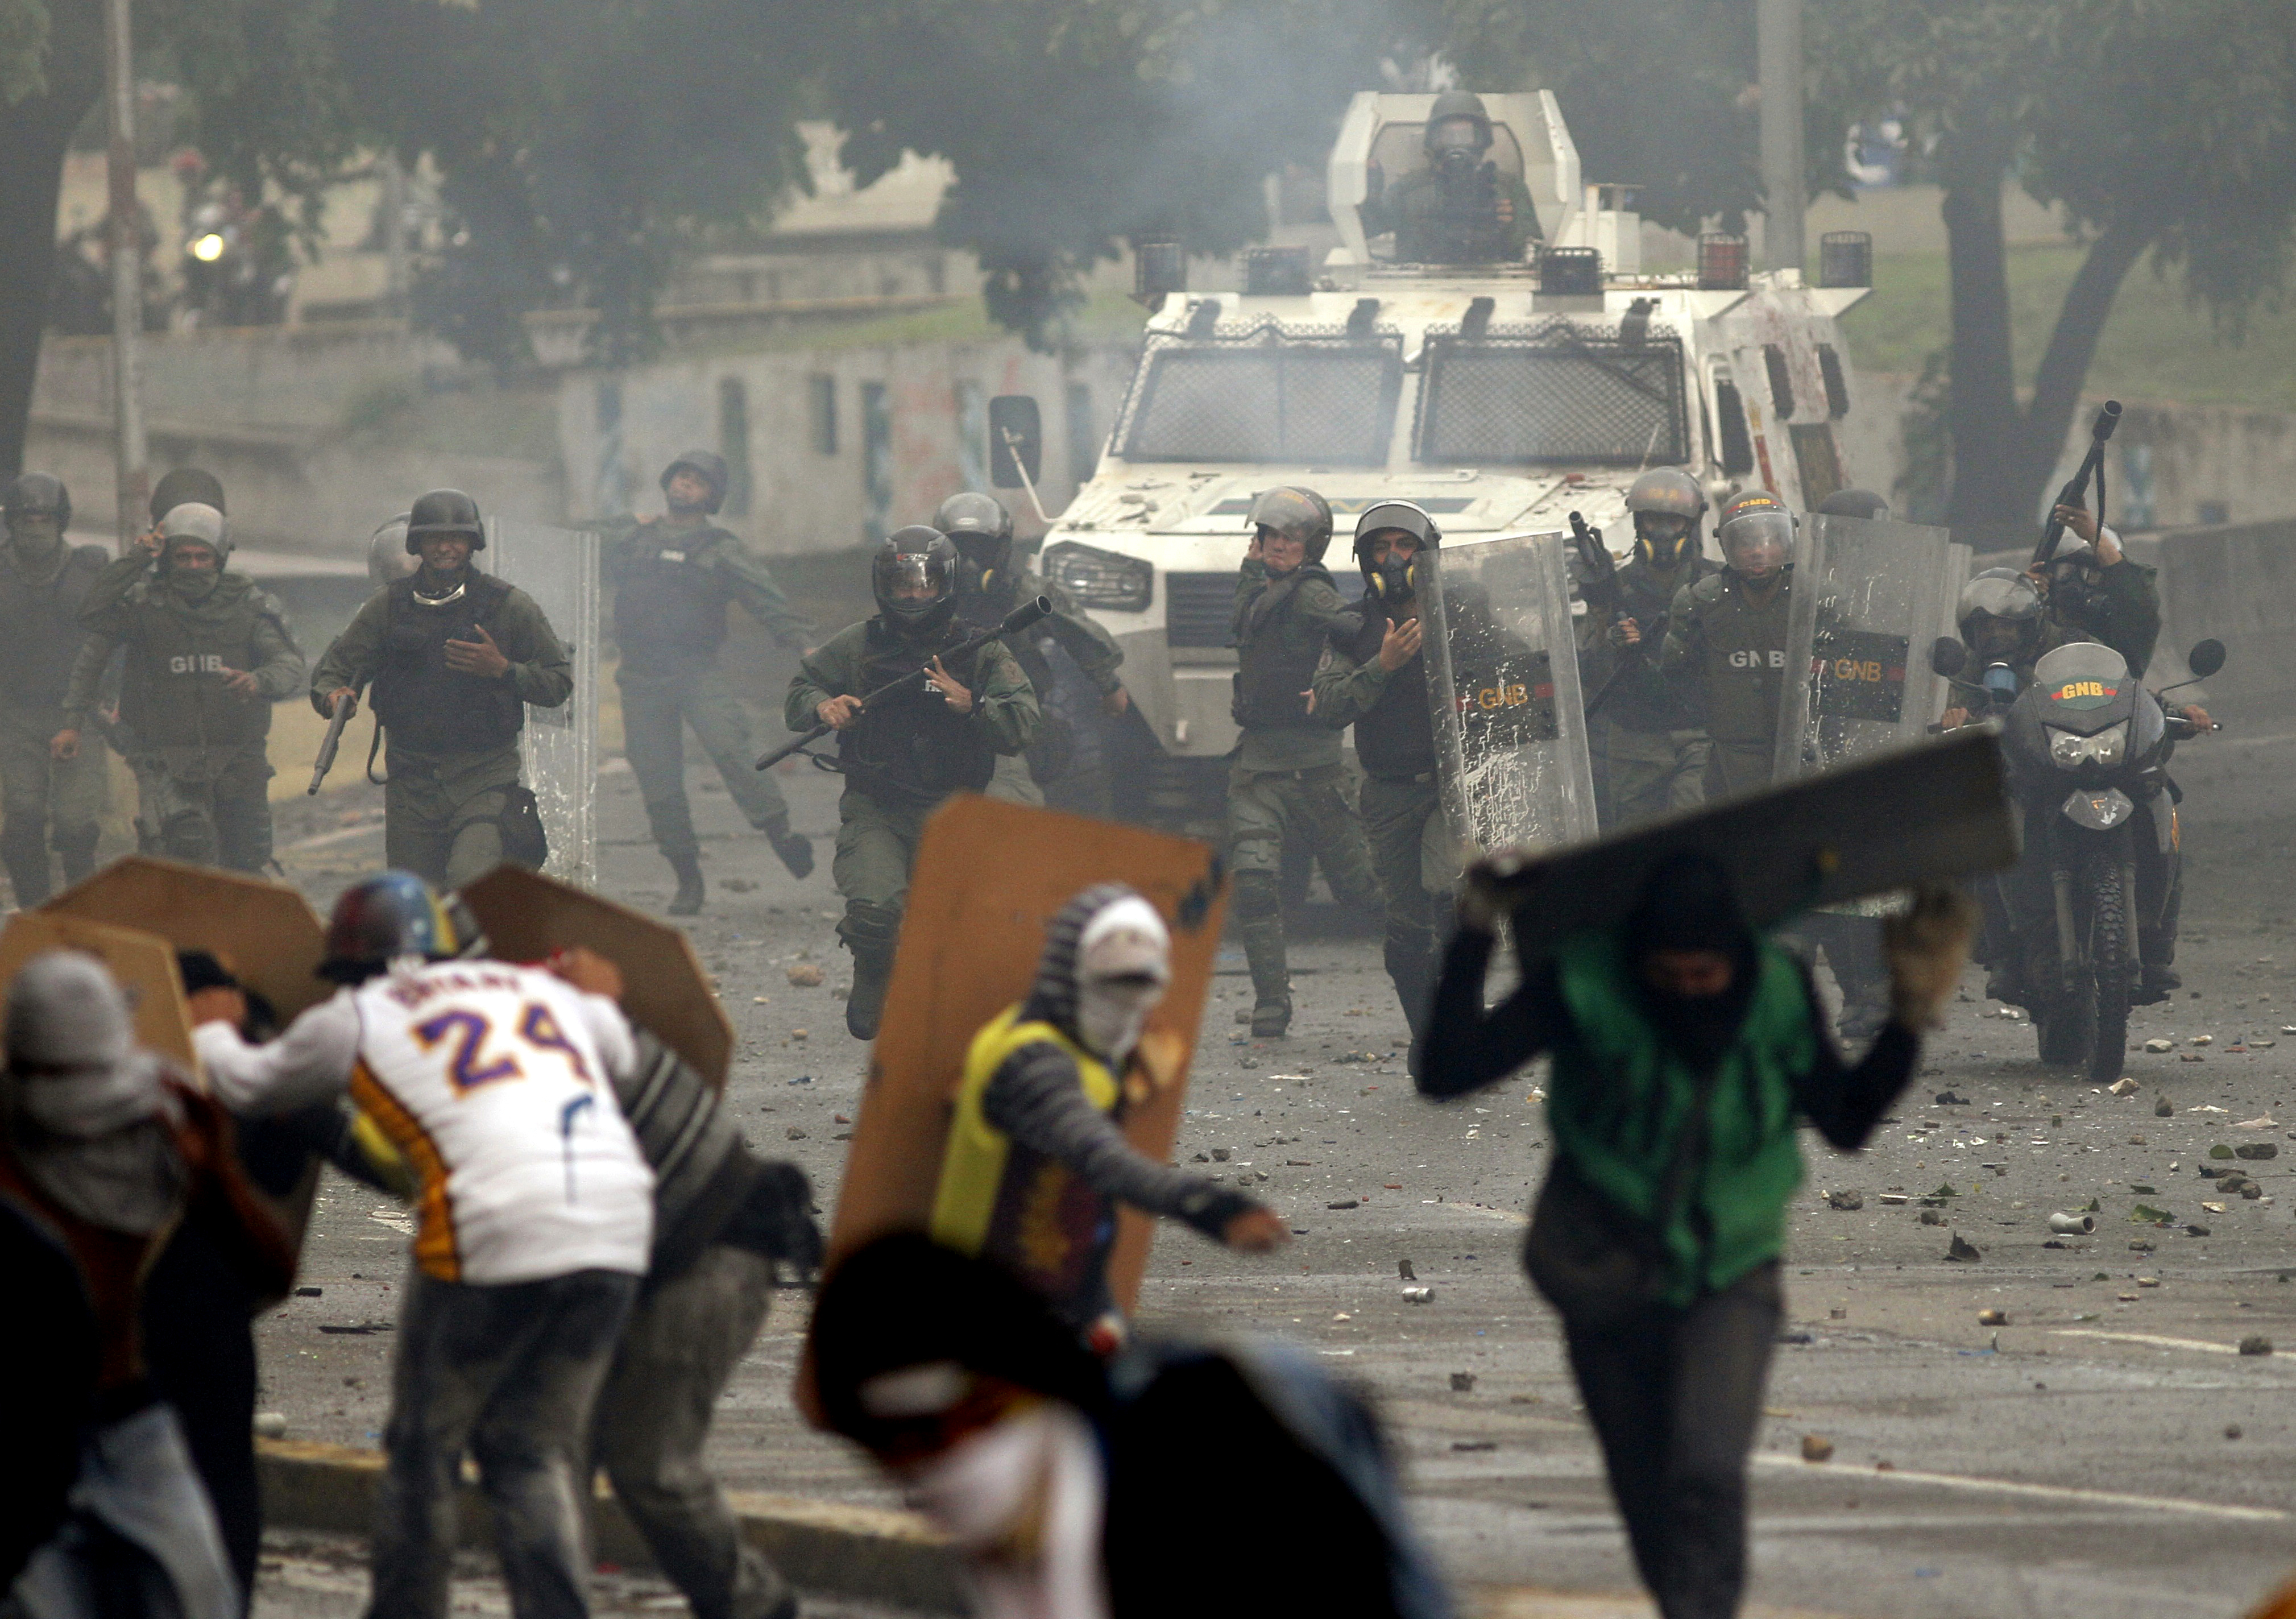 Bolivarian National Guards charge on anti-government demonstrators